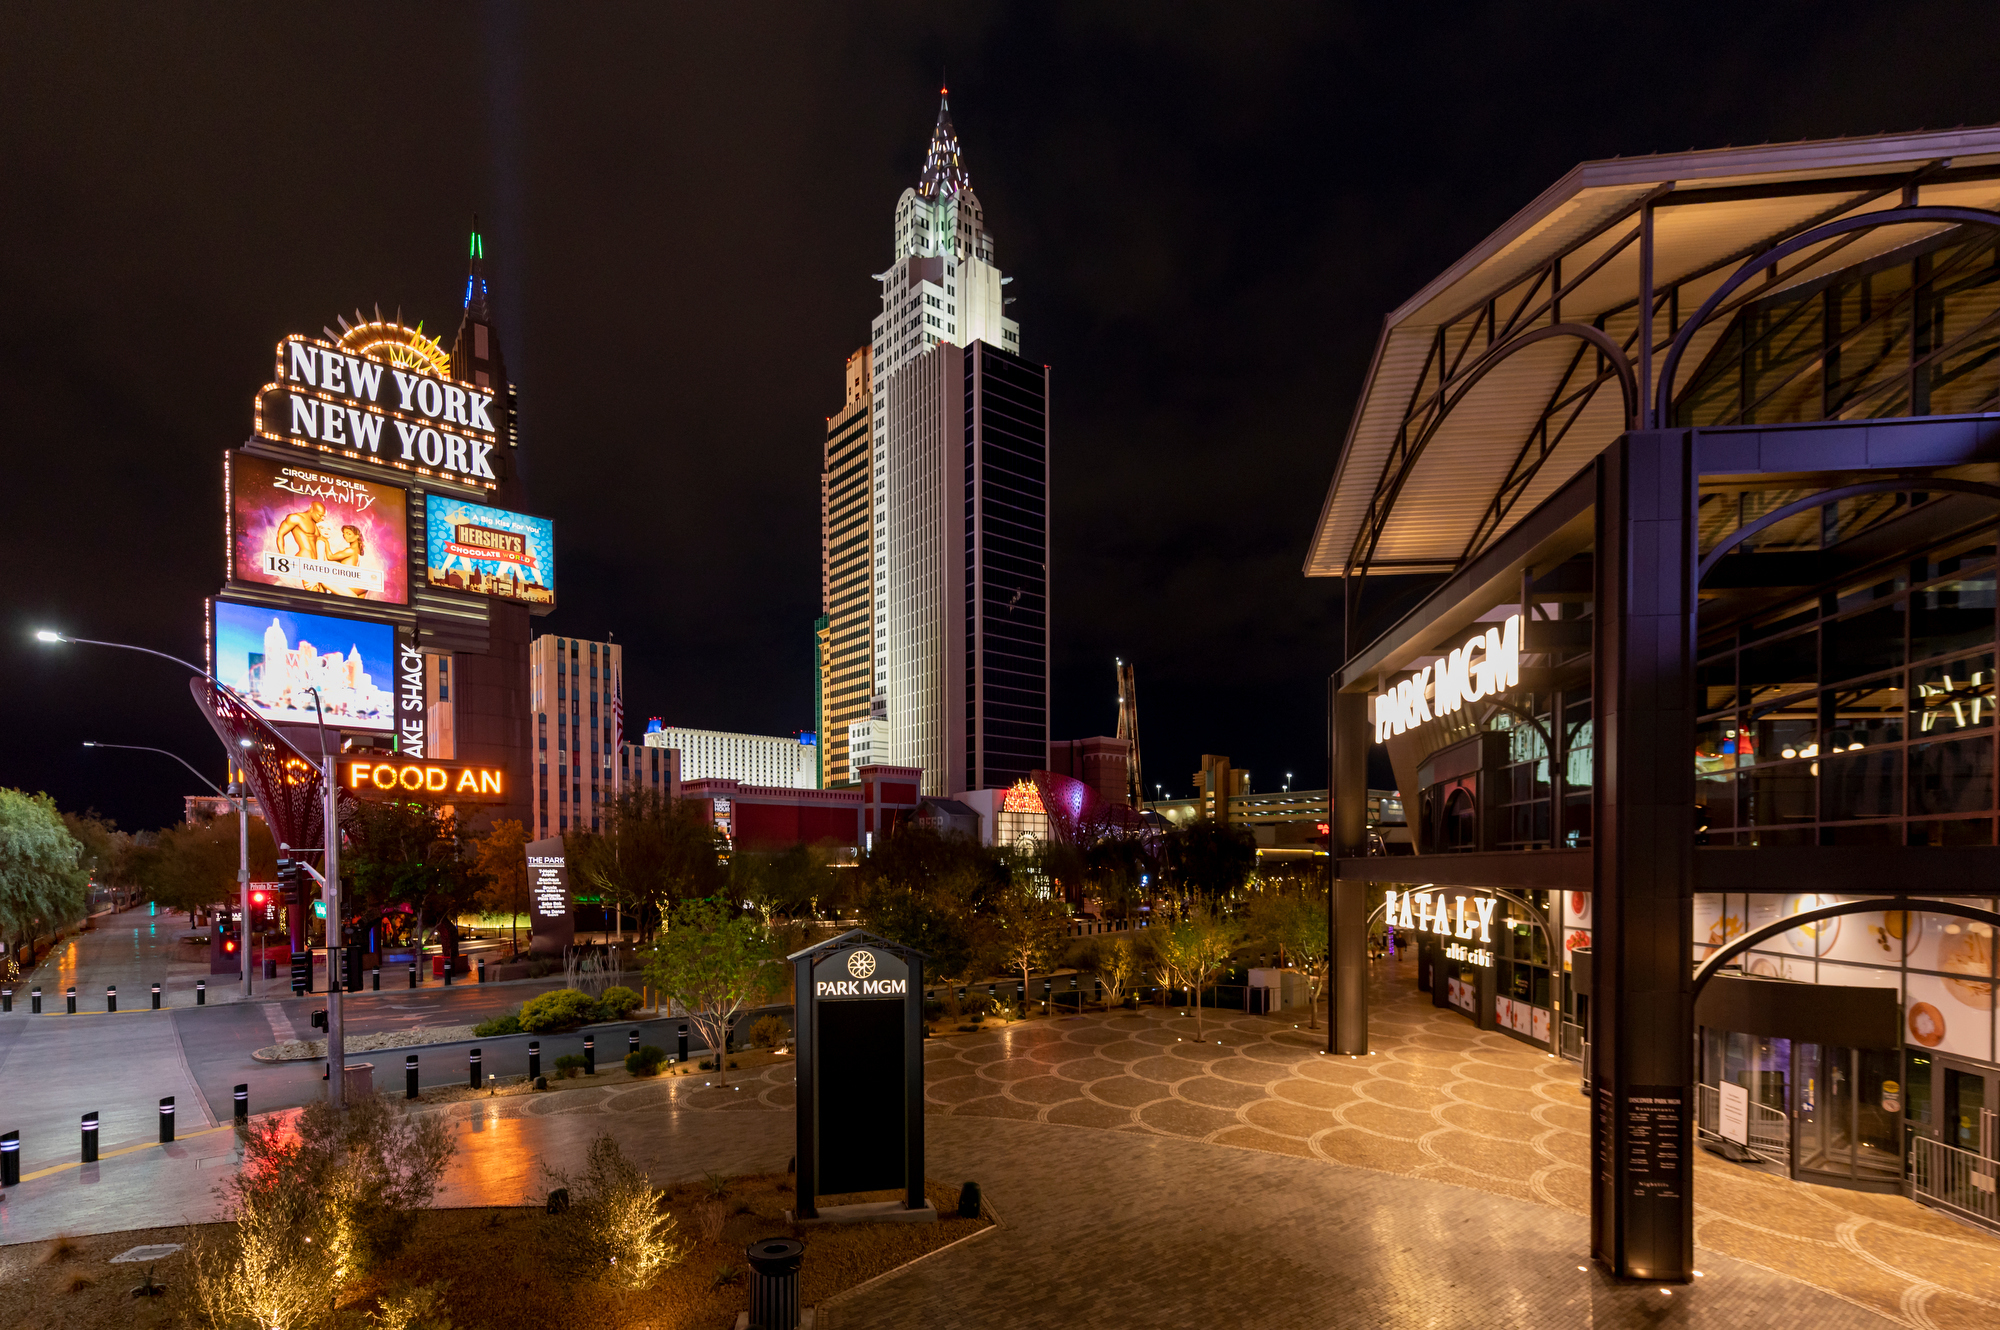 A night view of two casinos